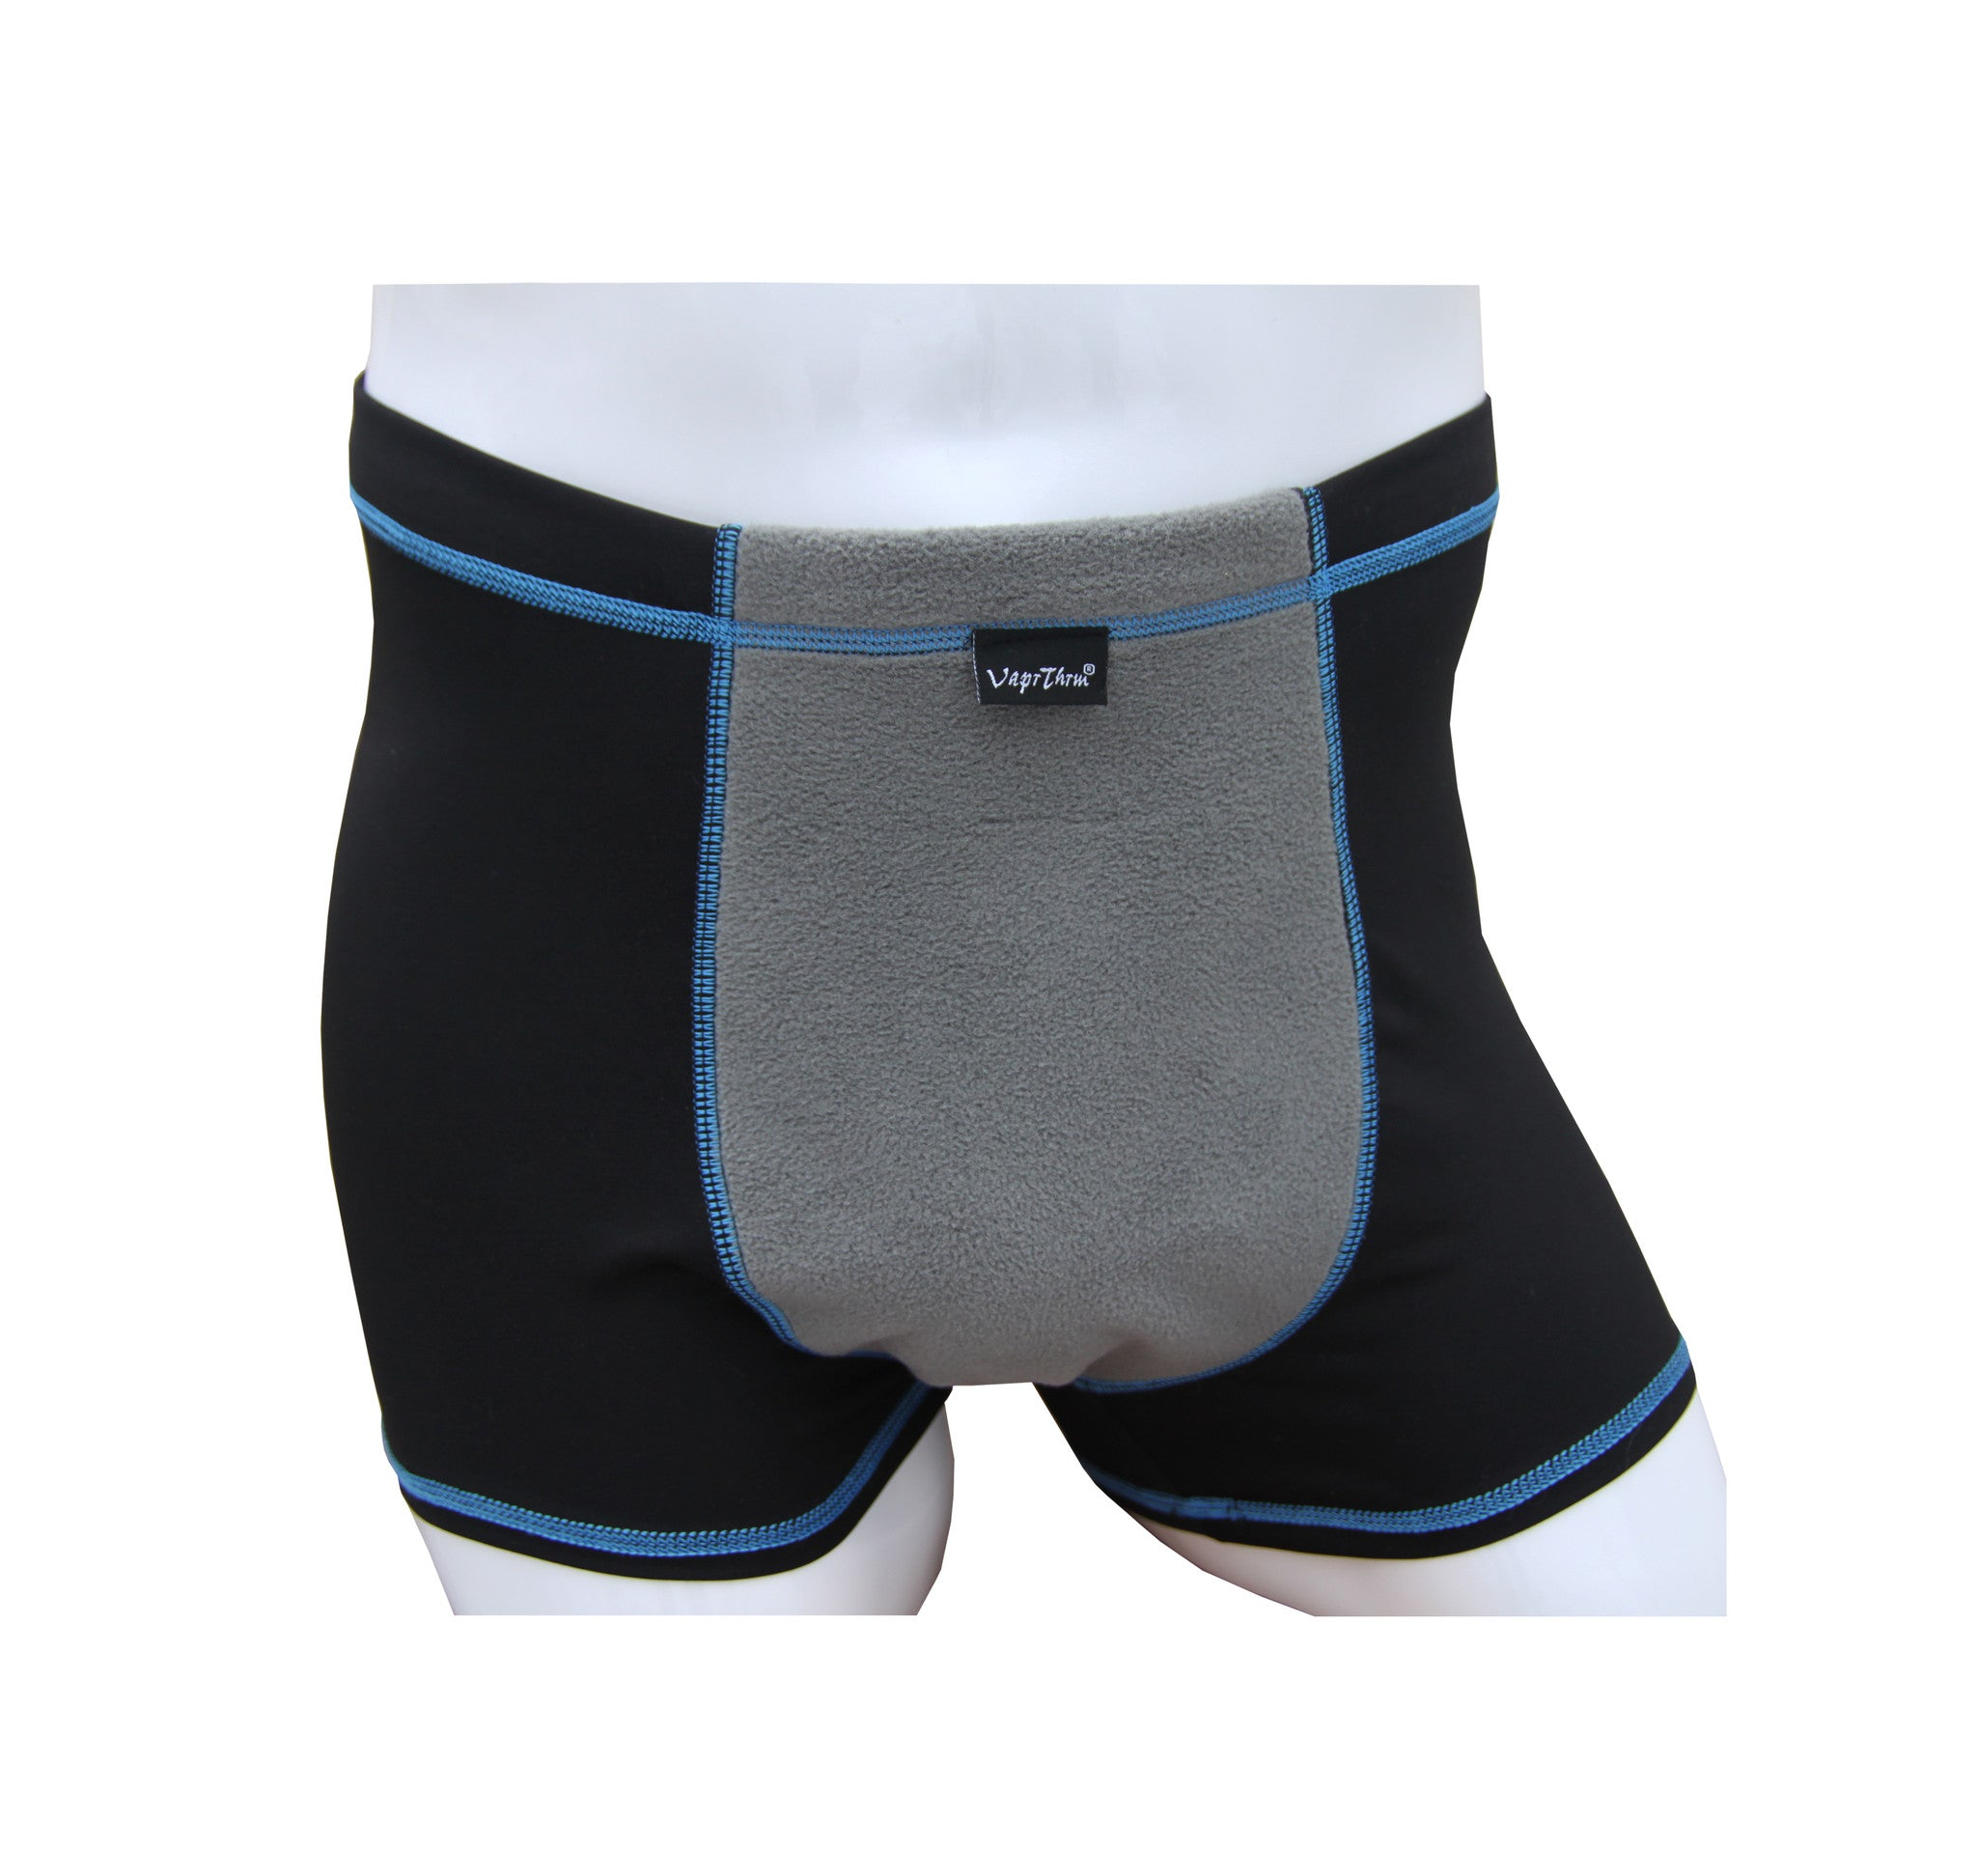 Warmest winter briefs, winter underwear, boxer brief